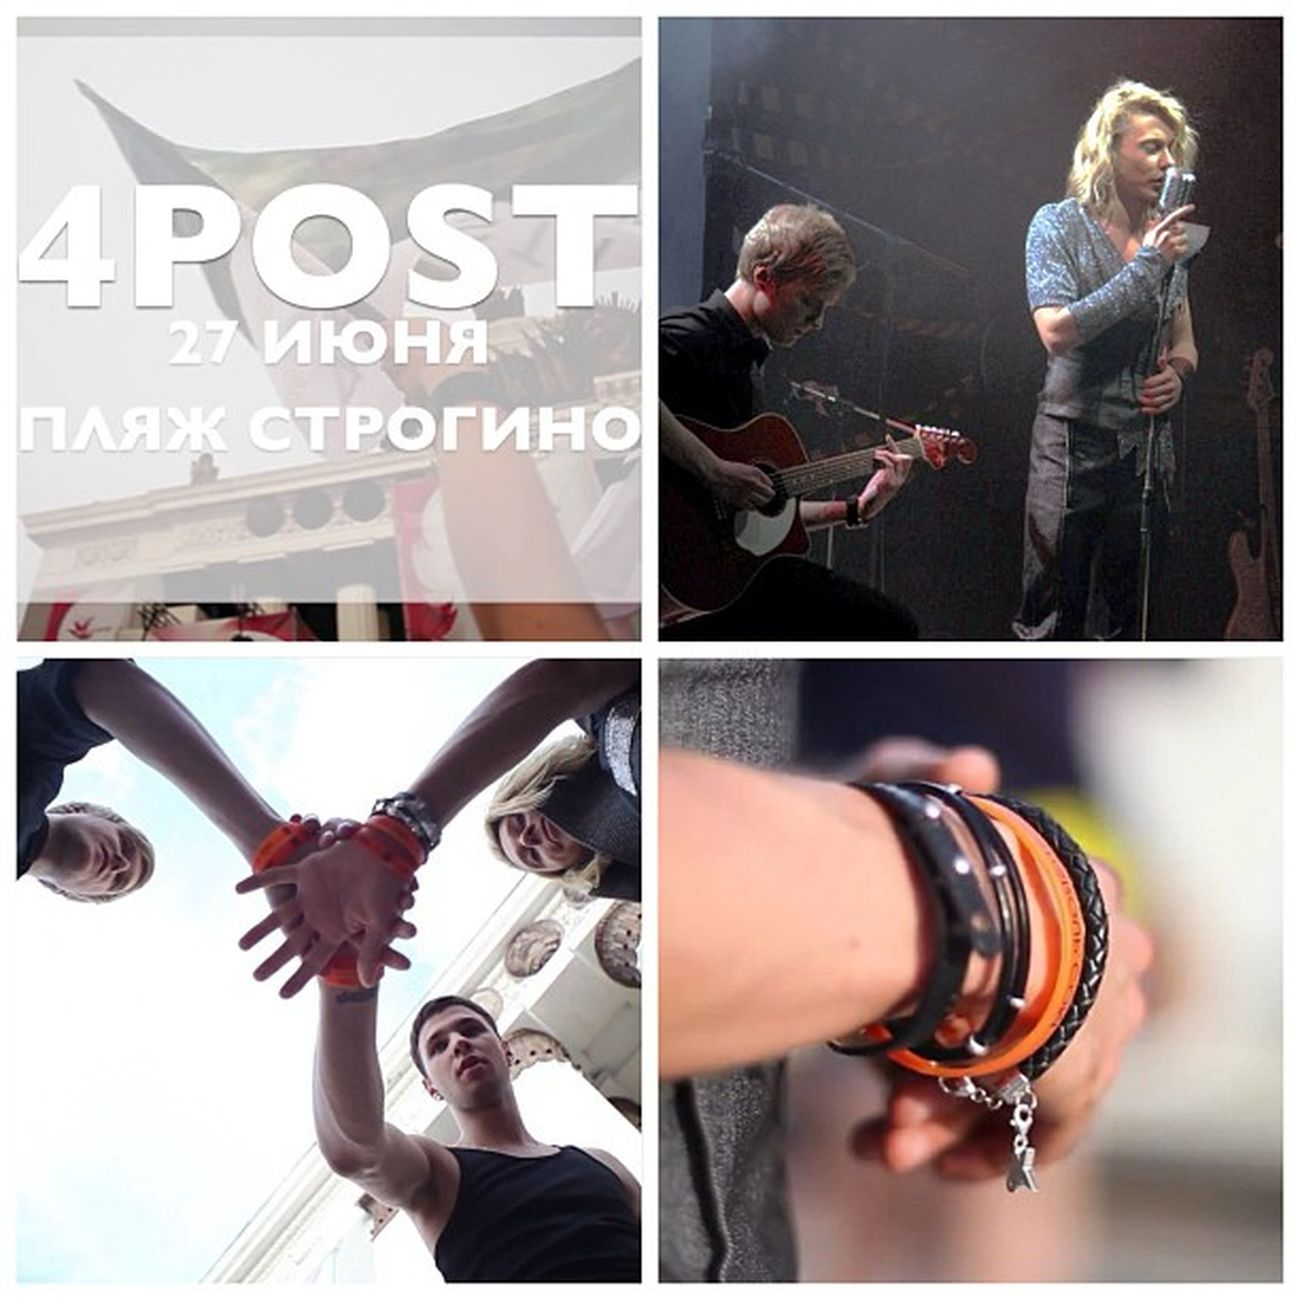 Уже сегодня! 4postsummer спасижизнь 4post 4postsummer 4postтолькодлятебя толькодлятебя